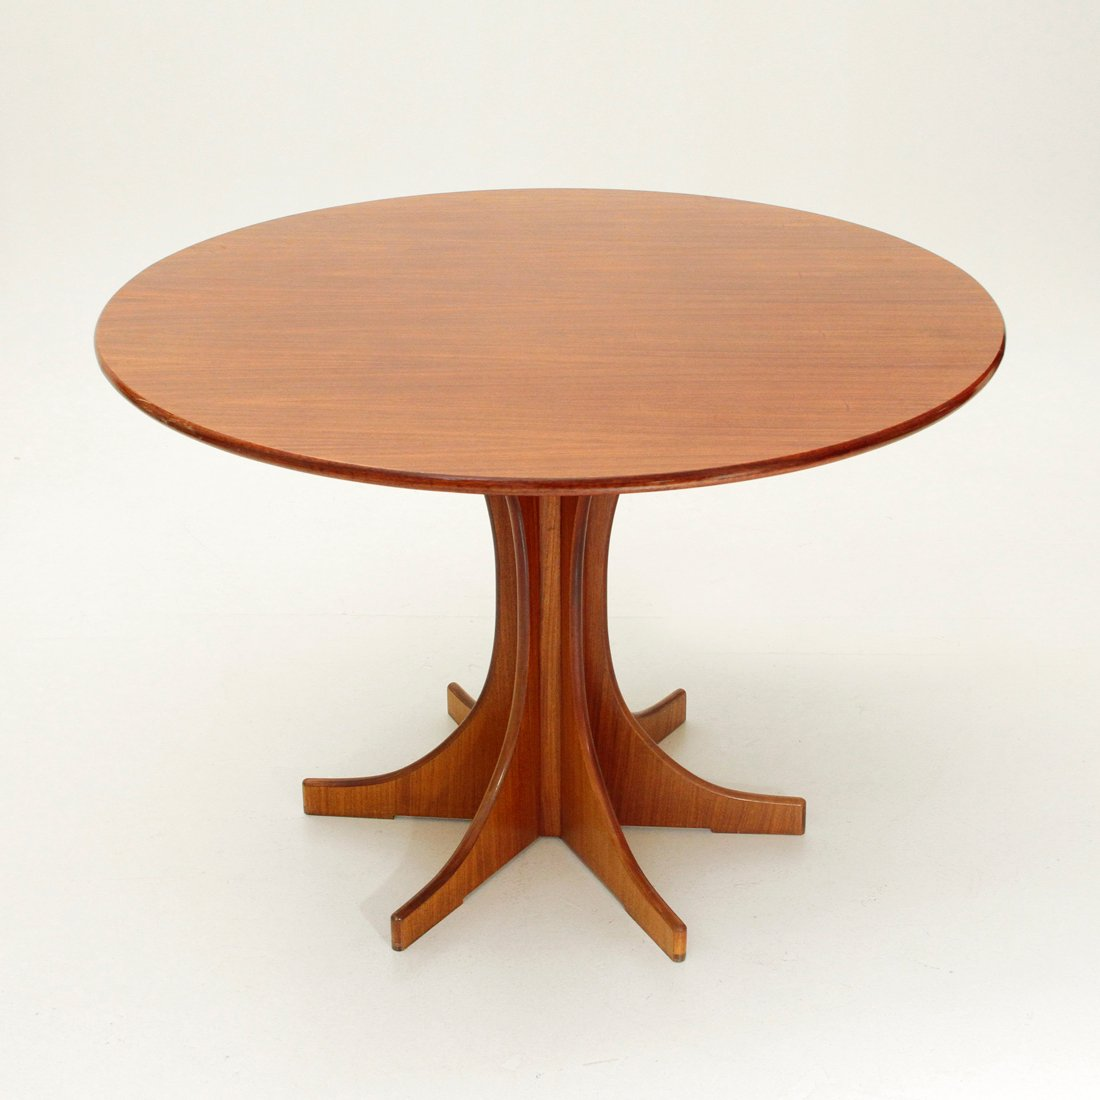 Wood Dining Table For Sale: Italian Round Wooden Dining Table, 1960s For Sale At Pamono